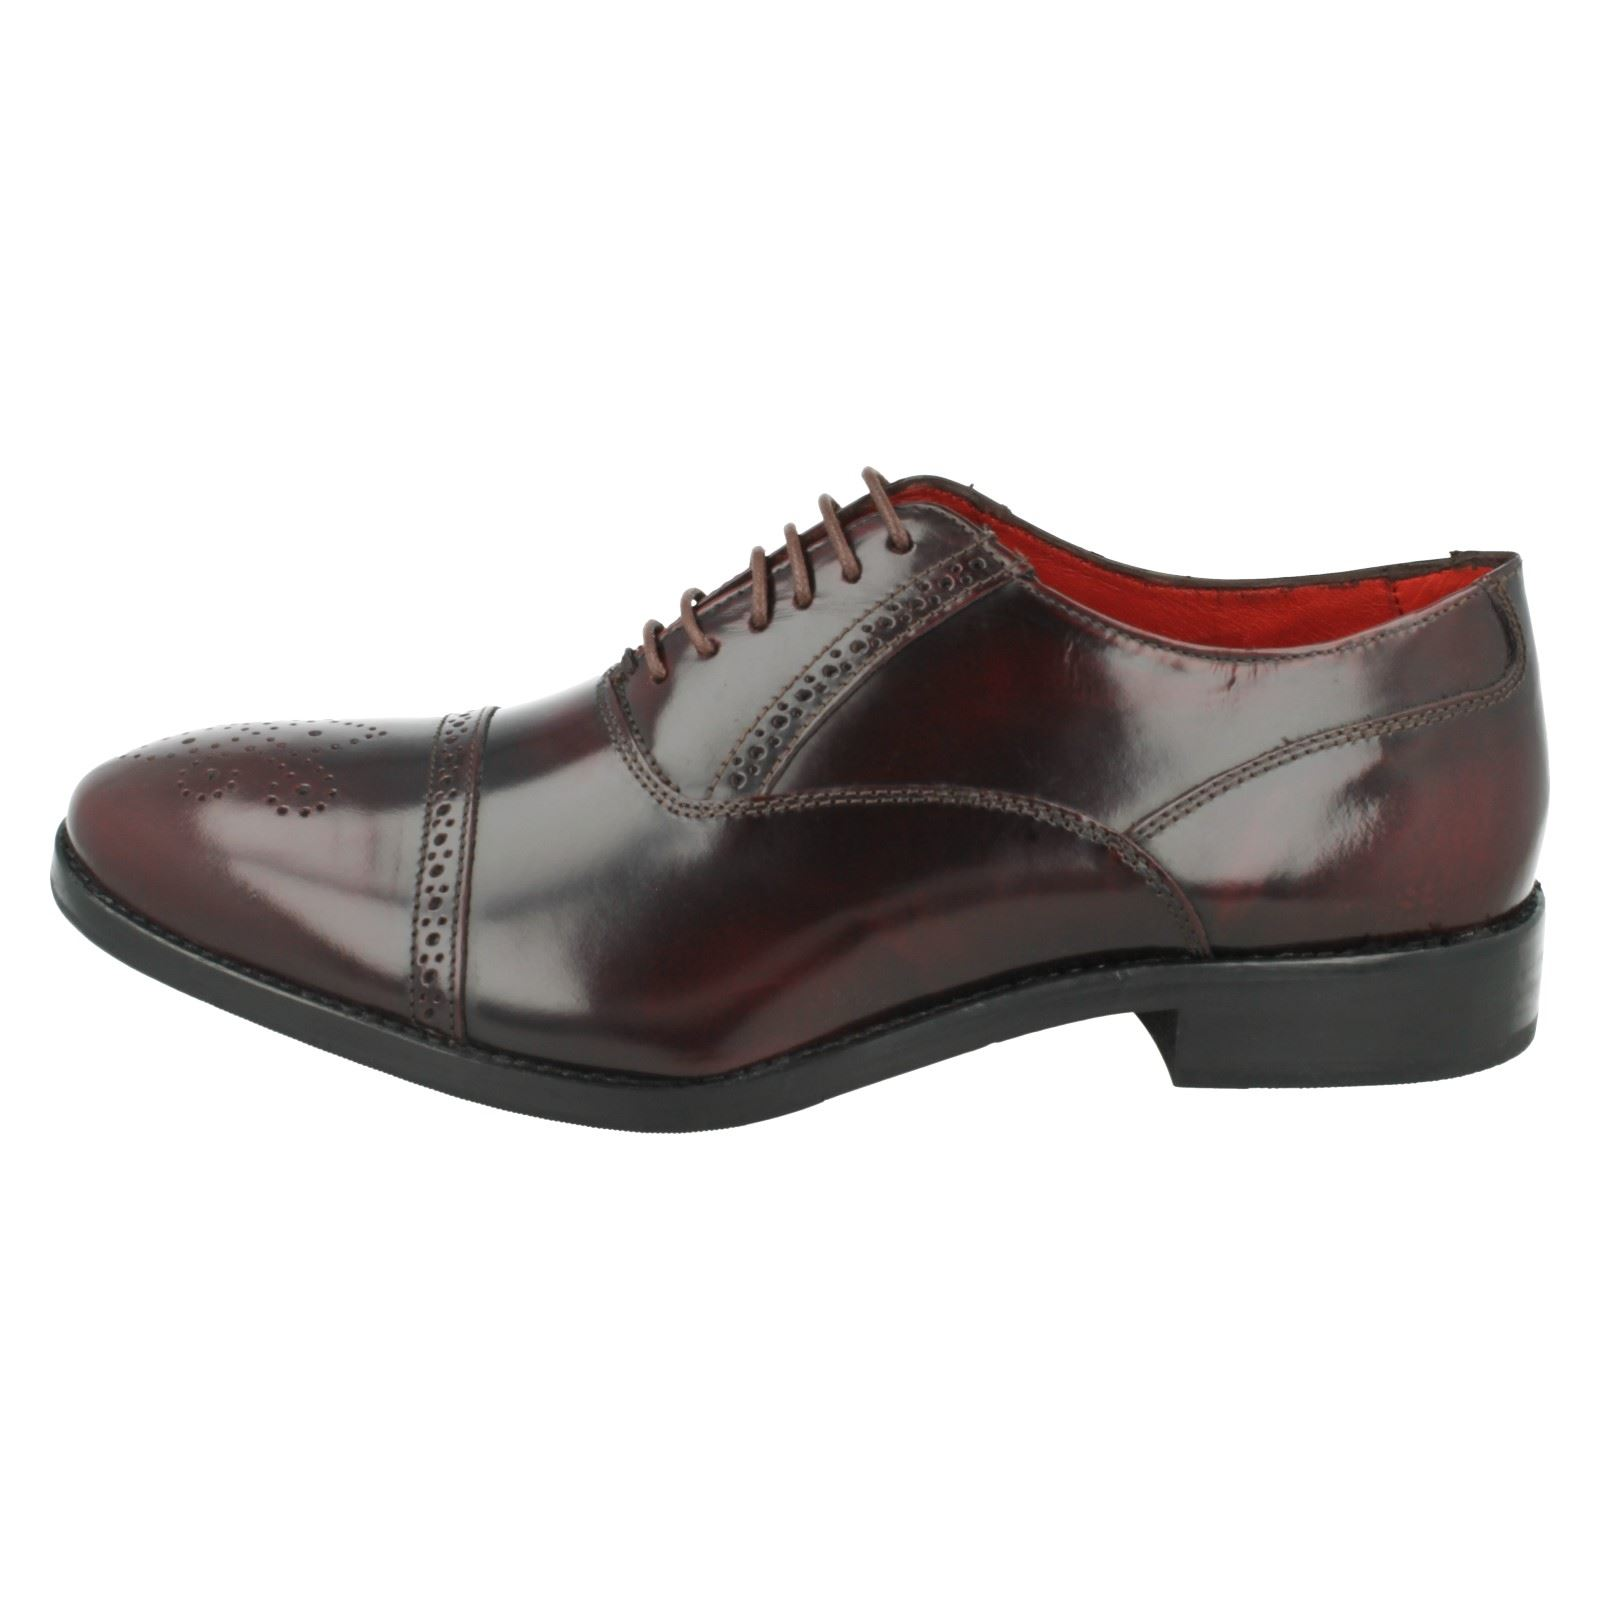 Mens Base London Noel Shoes Hi Shine Oxford Brouges Shoes Noel Label Bordo(Burgundy) 178ea0